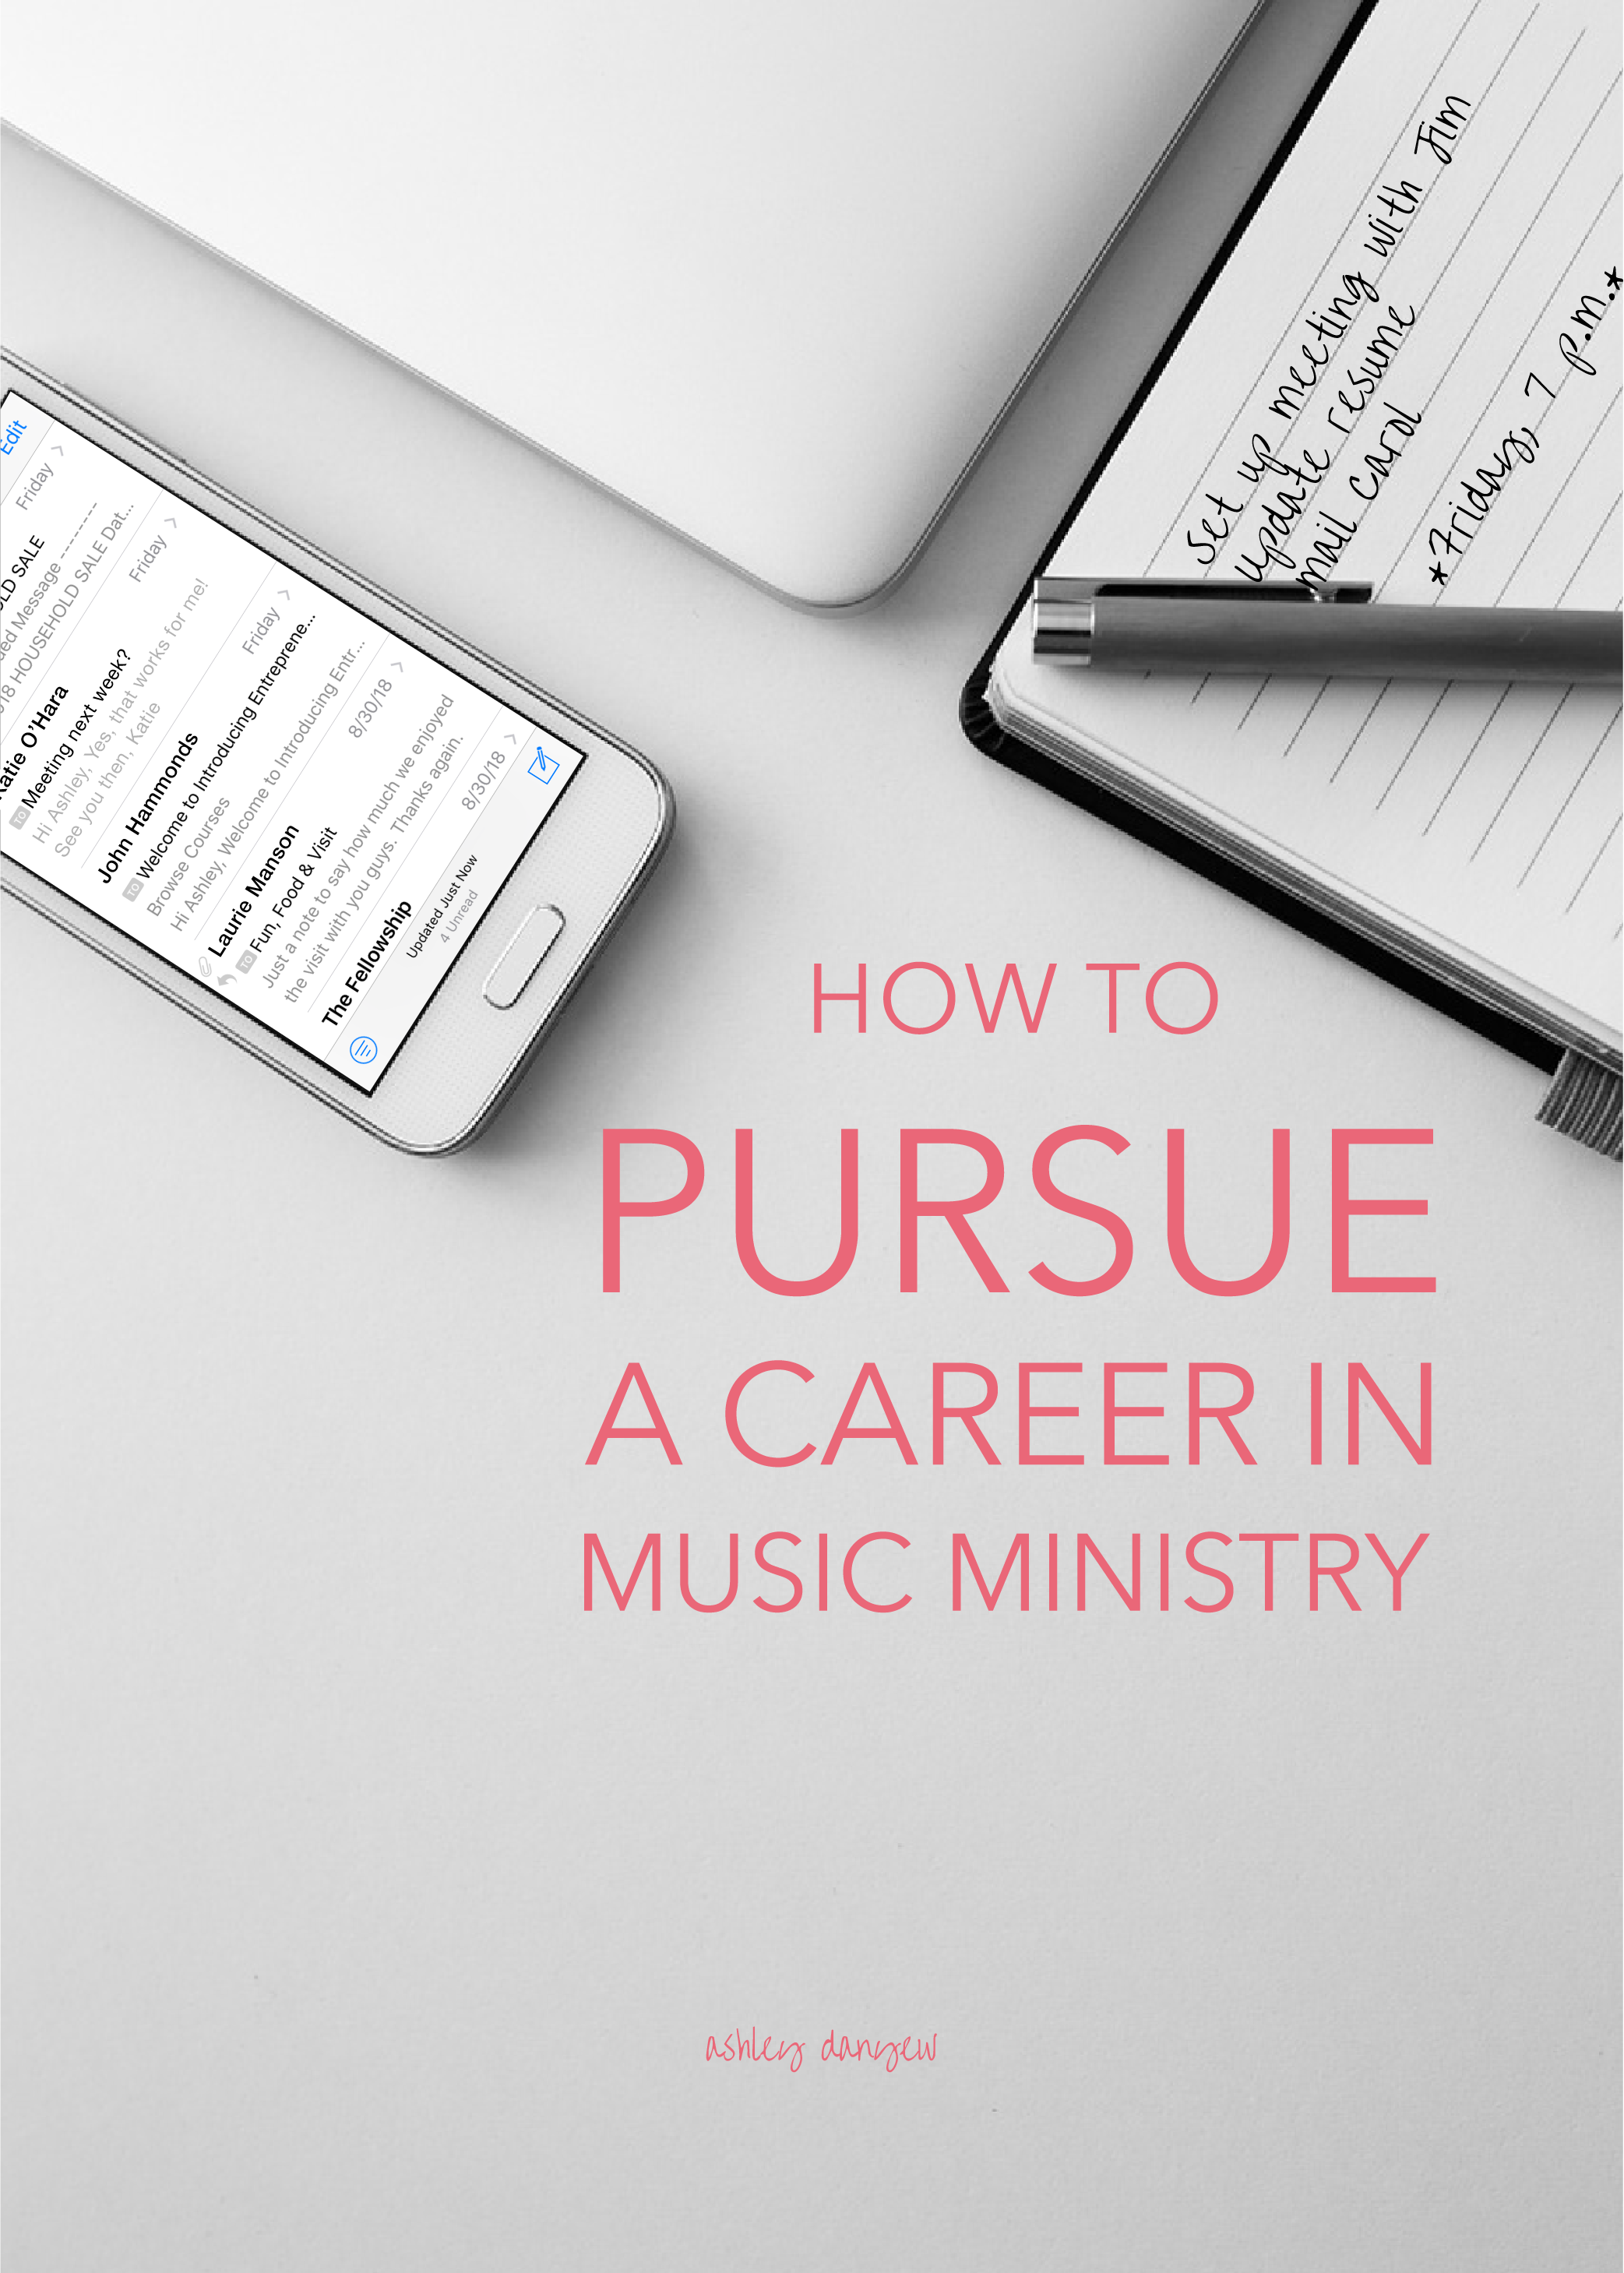 How to Pursue a Career in Music Ministry